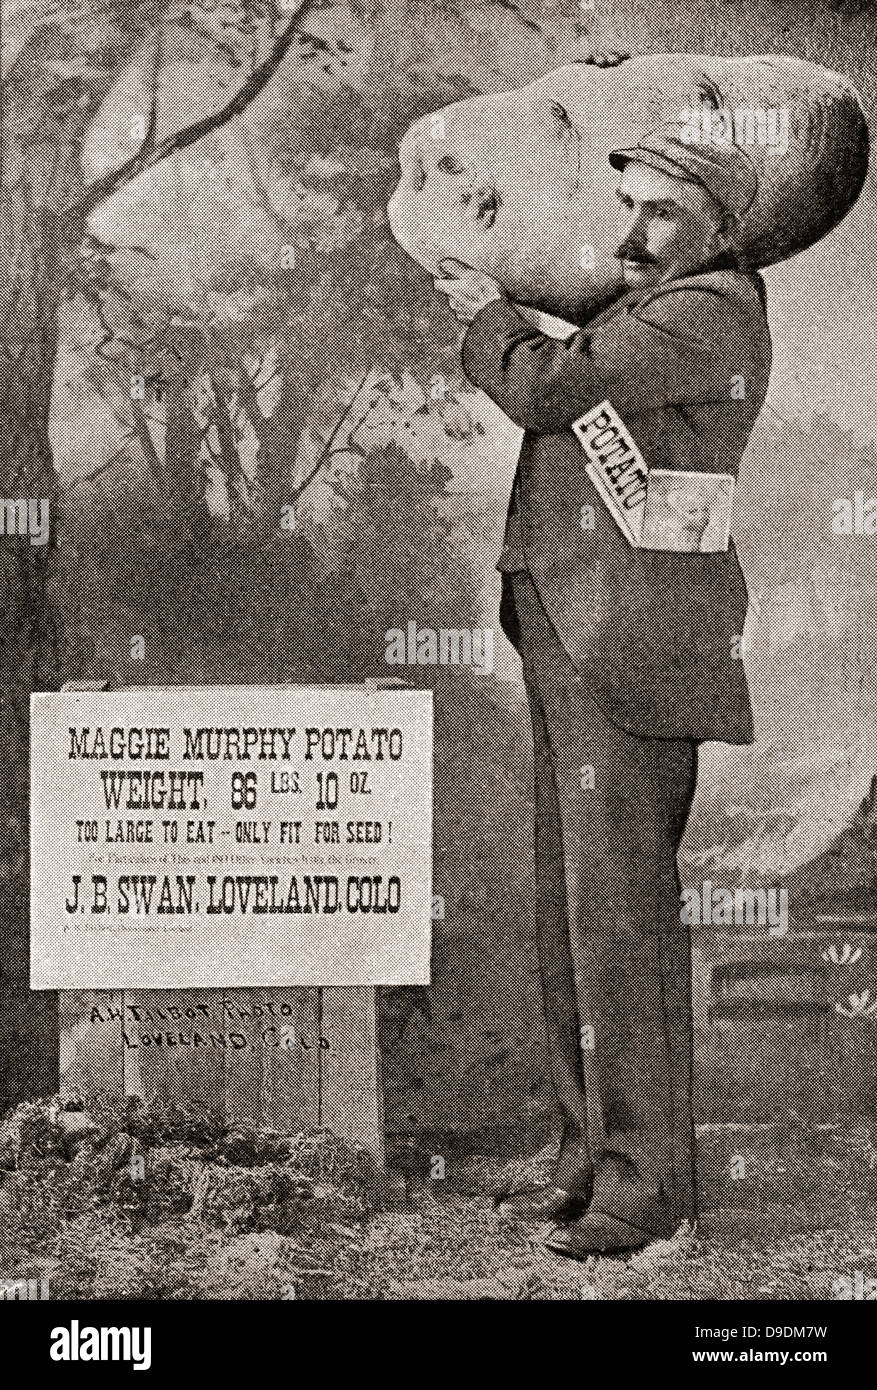 The biggest potato on record in 1879. The Maggie Murphy potato weighing 86lbs. 10oz. - Stock Image